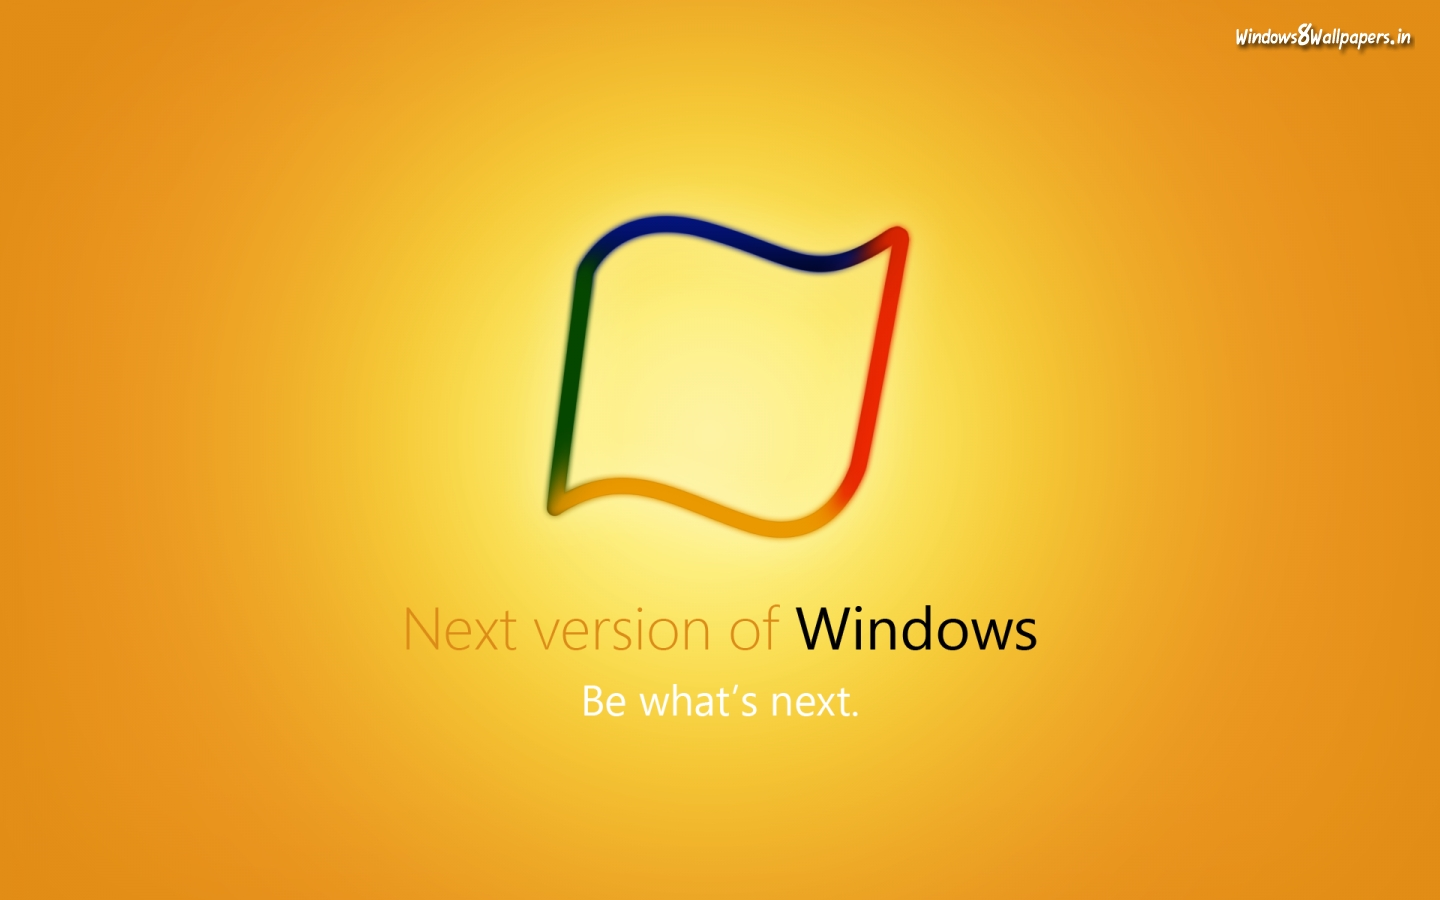 http://3.bp.blogspot.com/-CMnvXgJ5Mts/TjvmoVRoylI/AAAAAAAAApg/mz6D3JcniFg/s1600/next-windows-8-wallpapers.jpg